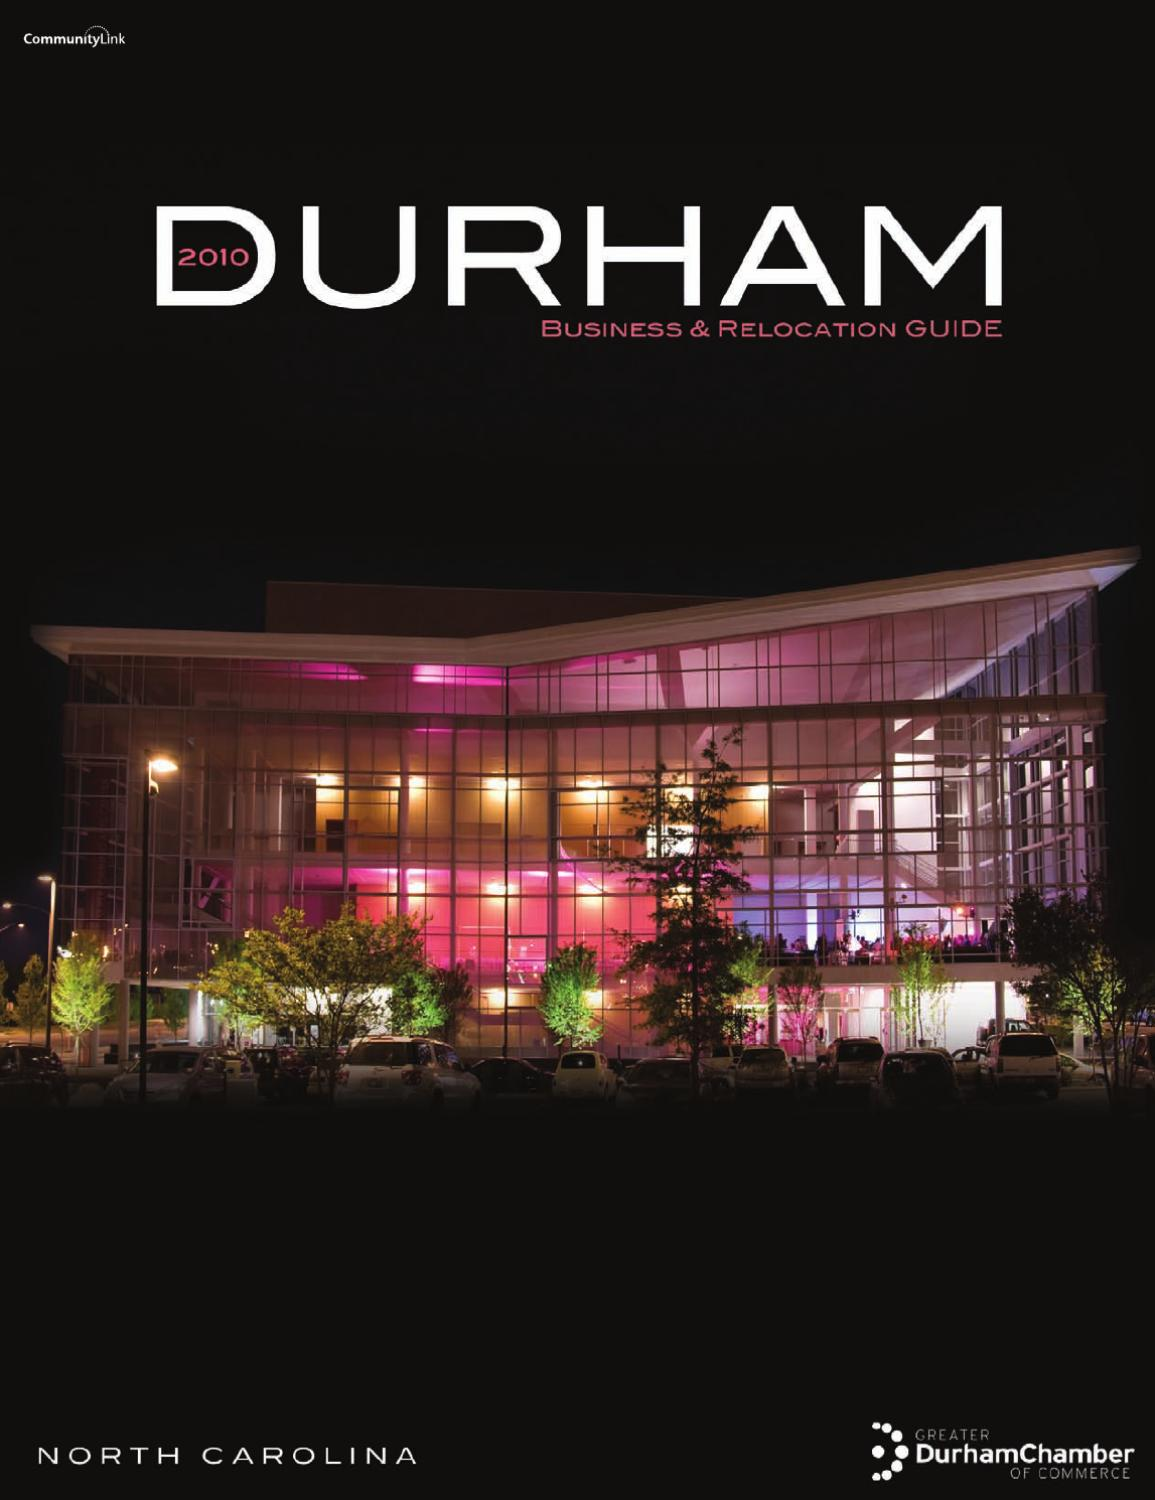 westerville chamber by cityscene media group issuu durham nc 2010 business and relocation guide